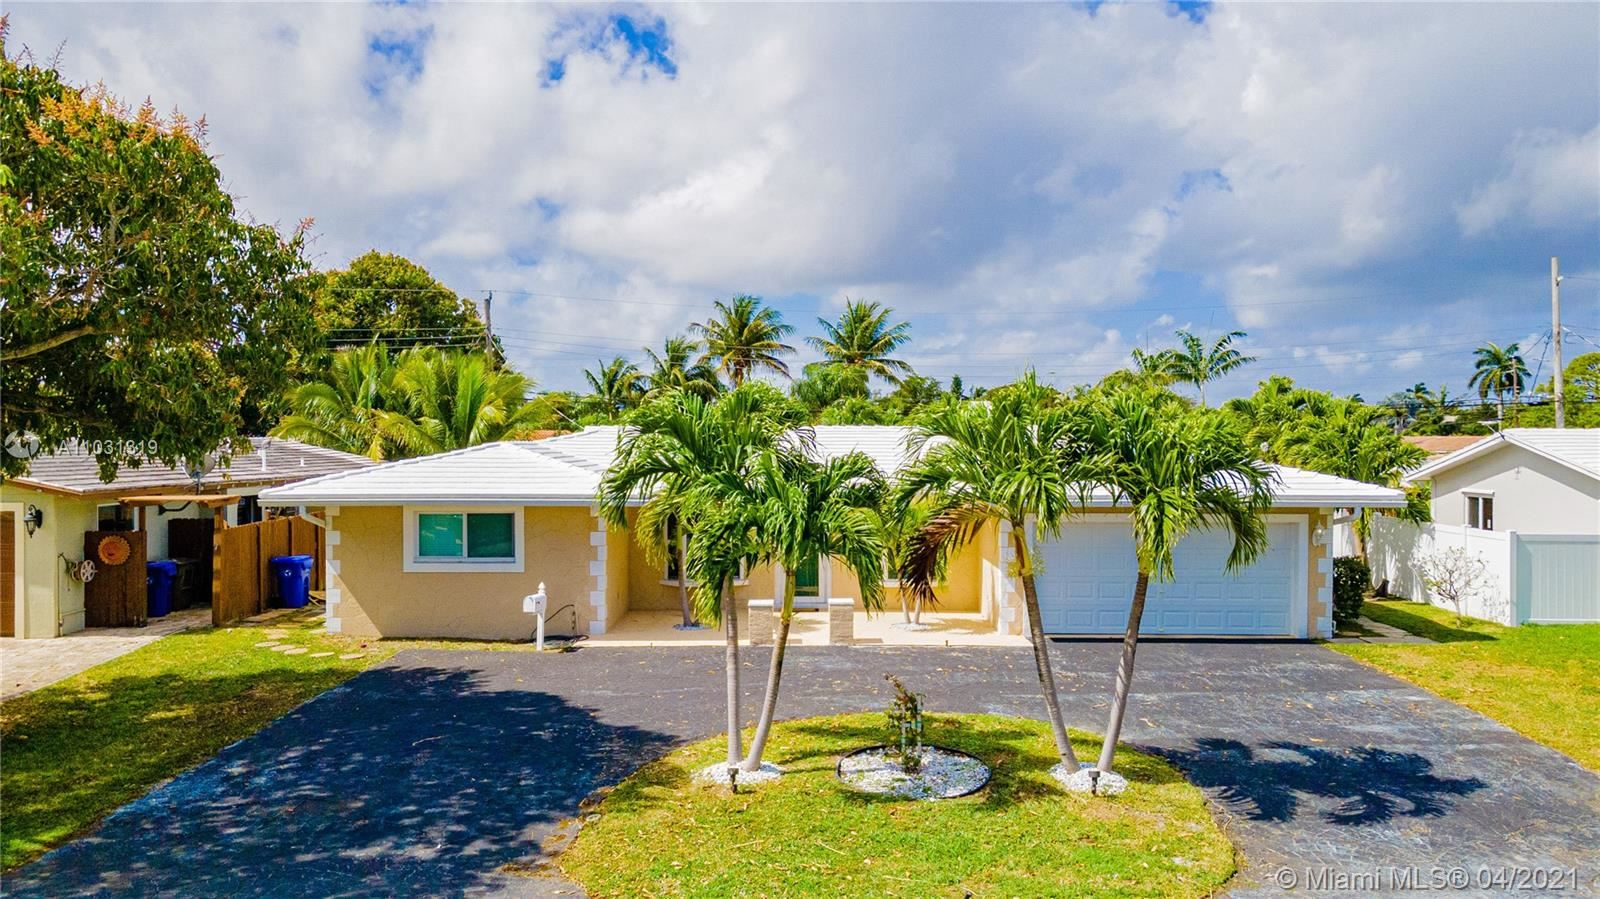 Photo of 5641 NE 16th Ave, Fort Lauderdale, FL 33334 (MLS # A11031319)